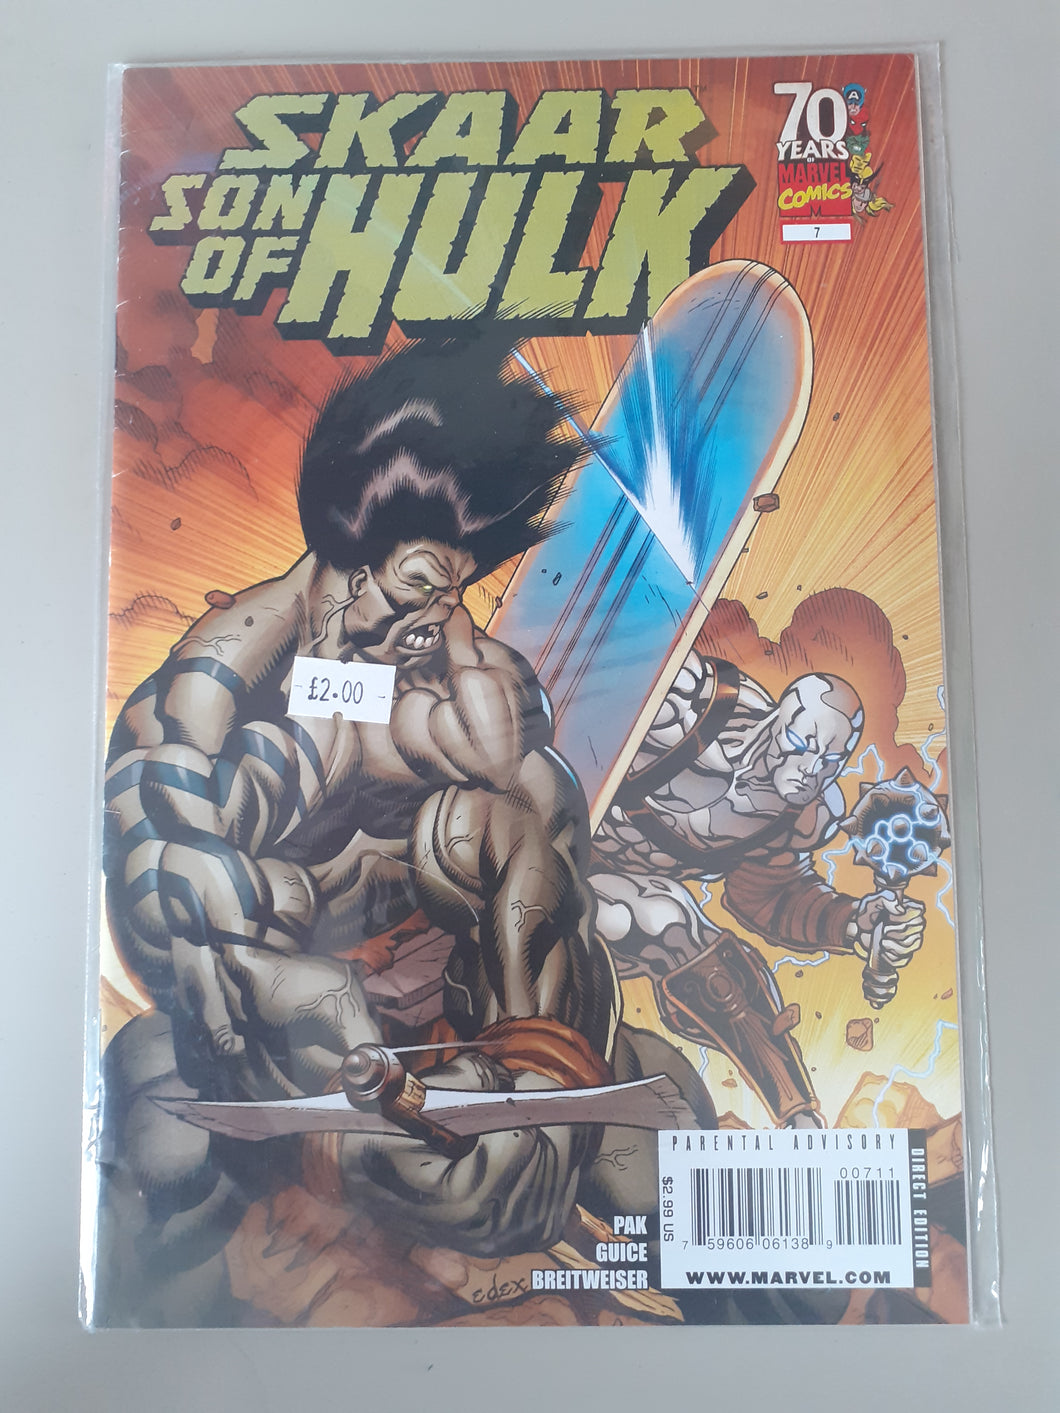 Skaar Son of Hulk #7